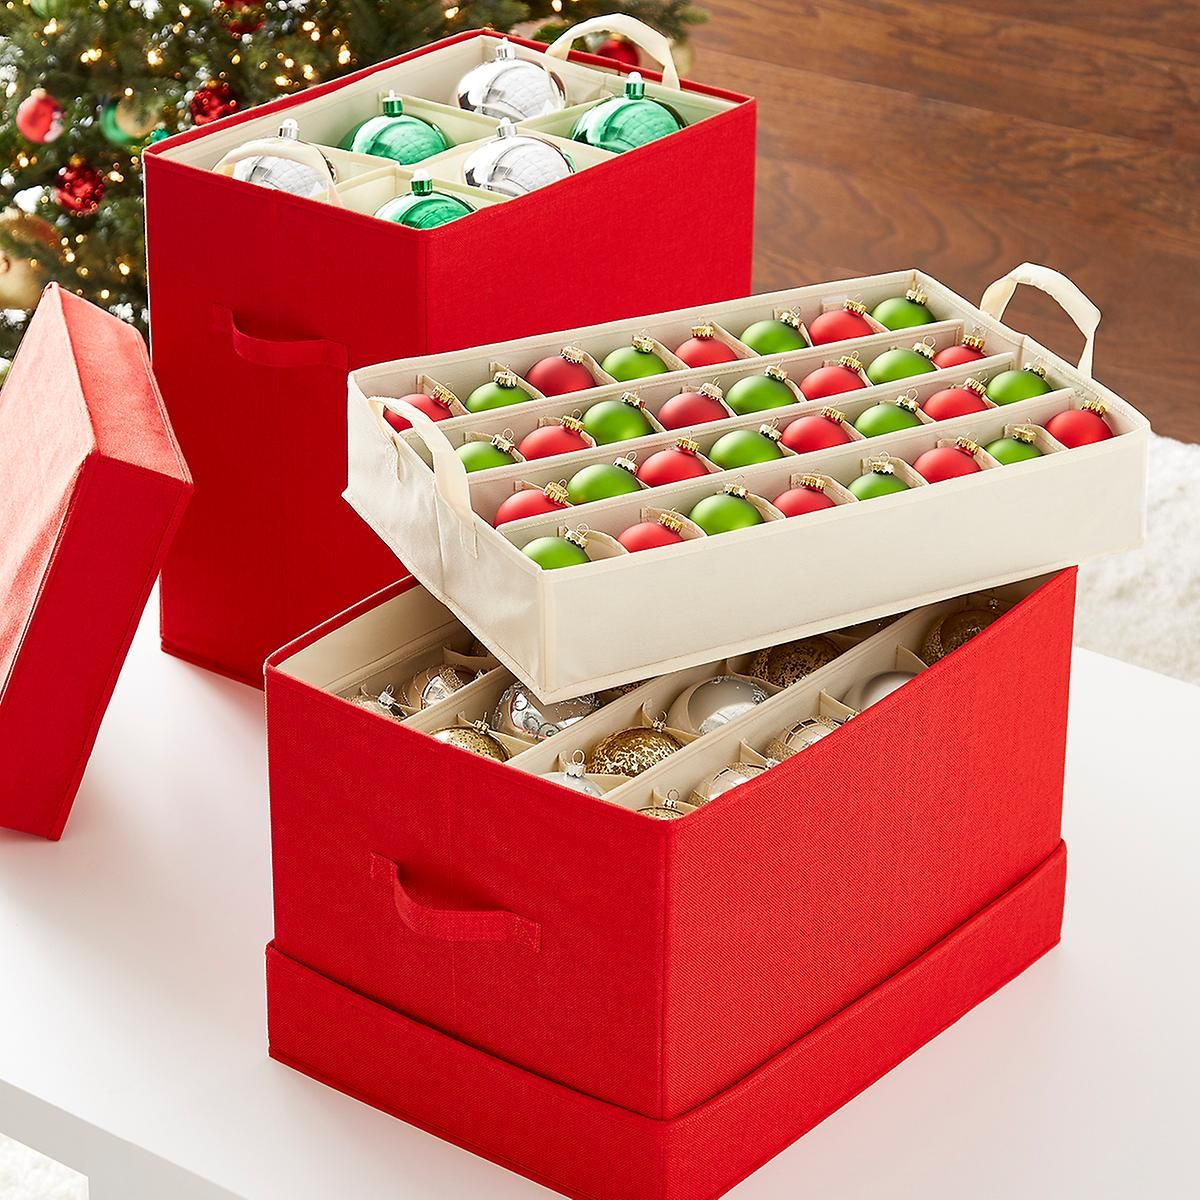 Container Store Ornament Storage Jubilee Ornament Storage Chests  Ornament Storage Container Store